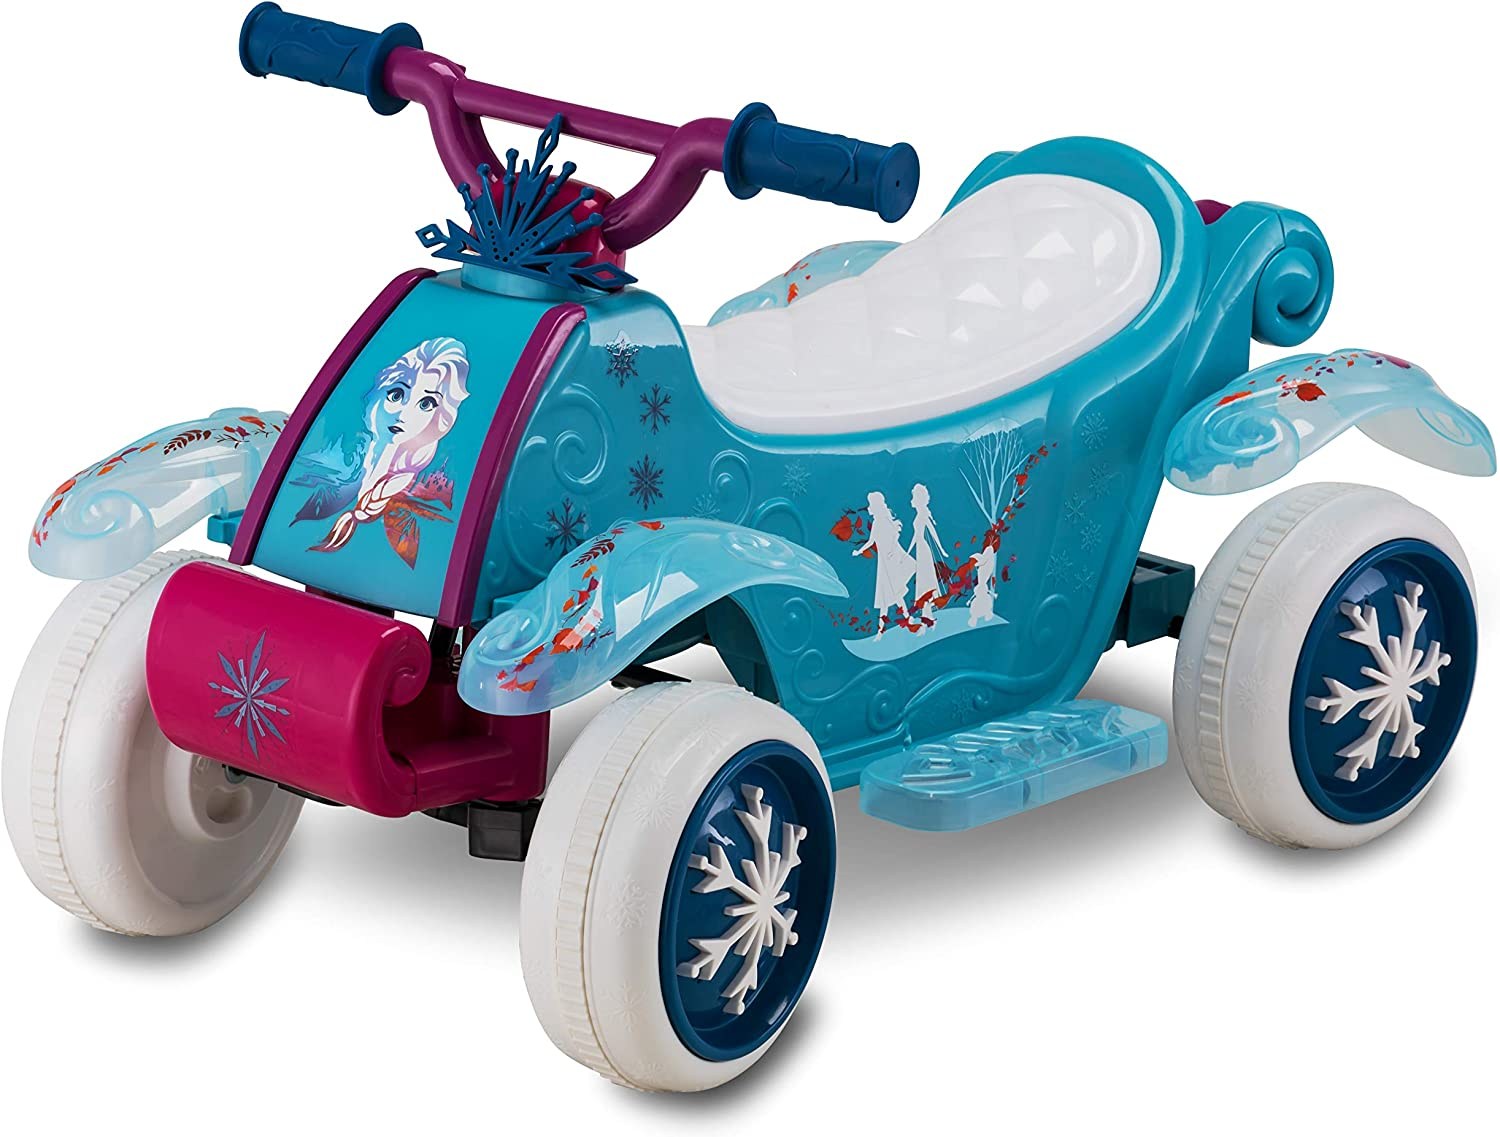 ELECTRIC BATTERY OPERATED RIDE ON CAR FOR KIDS TODDLER ELECTRIC RIDING TOYS BIKE